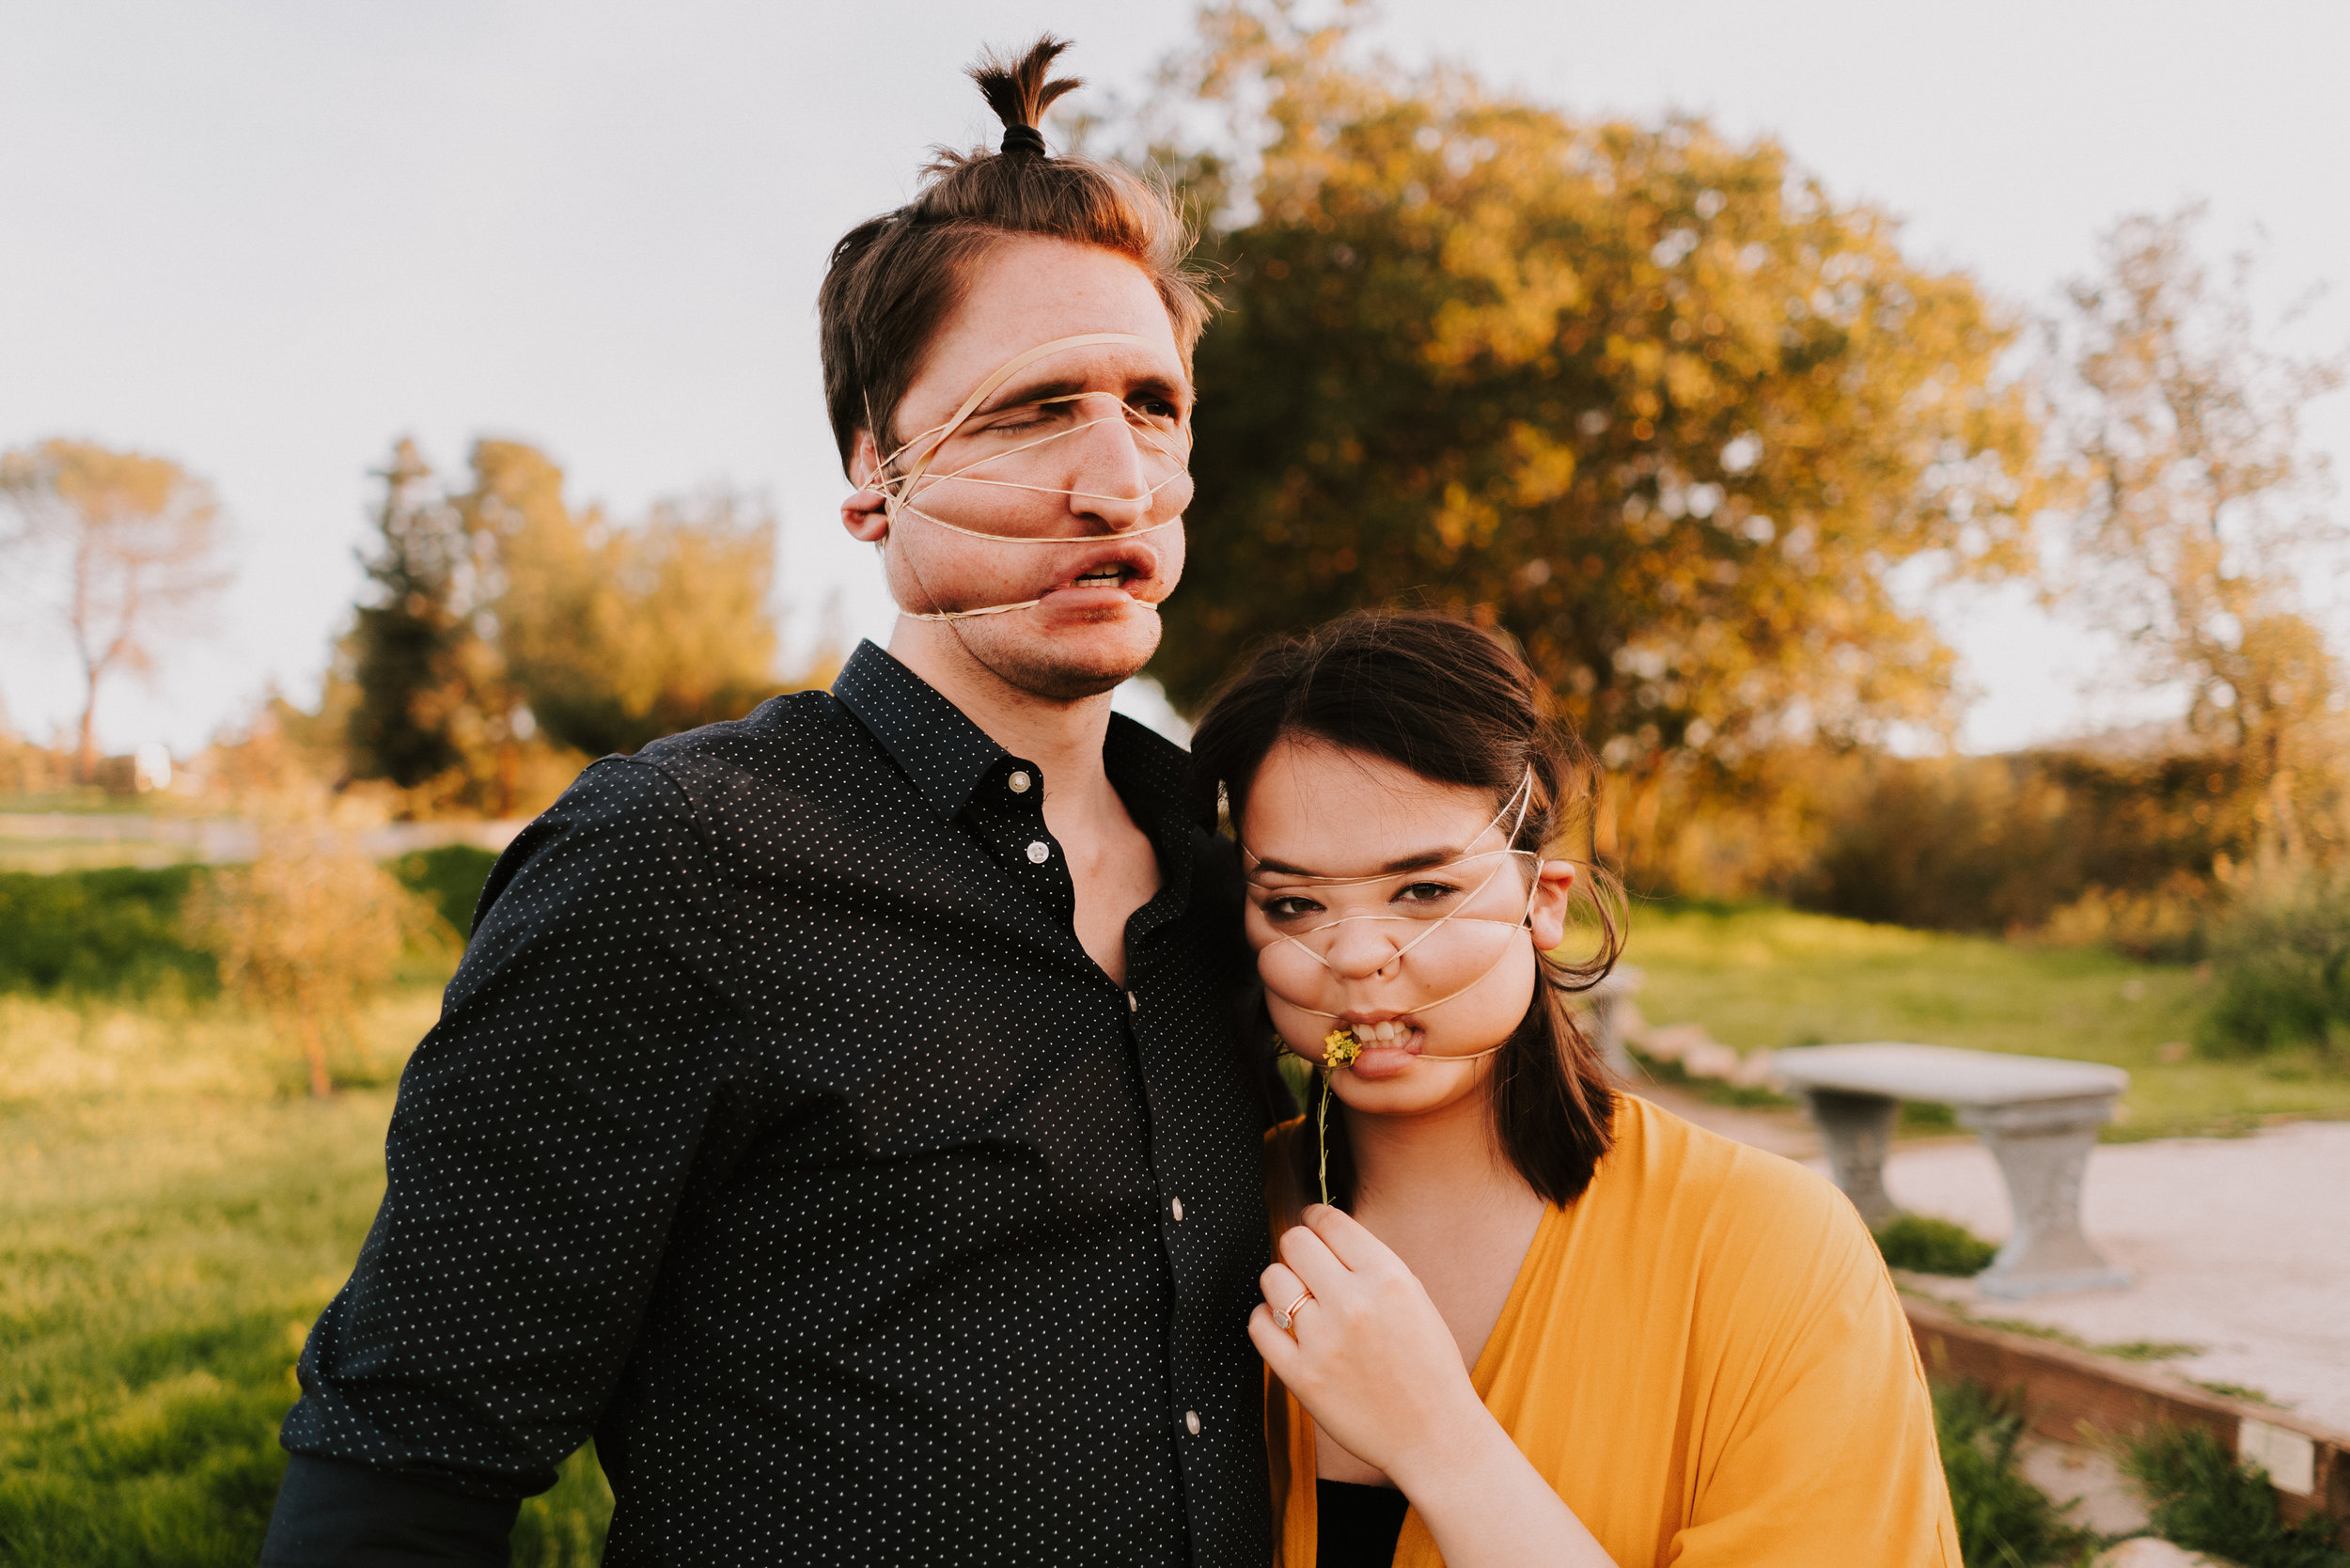 John and Thalia Rubber Band Face - Jake and Kim Photography 2018 111.jpg